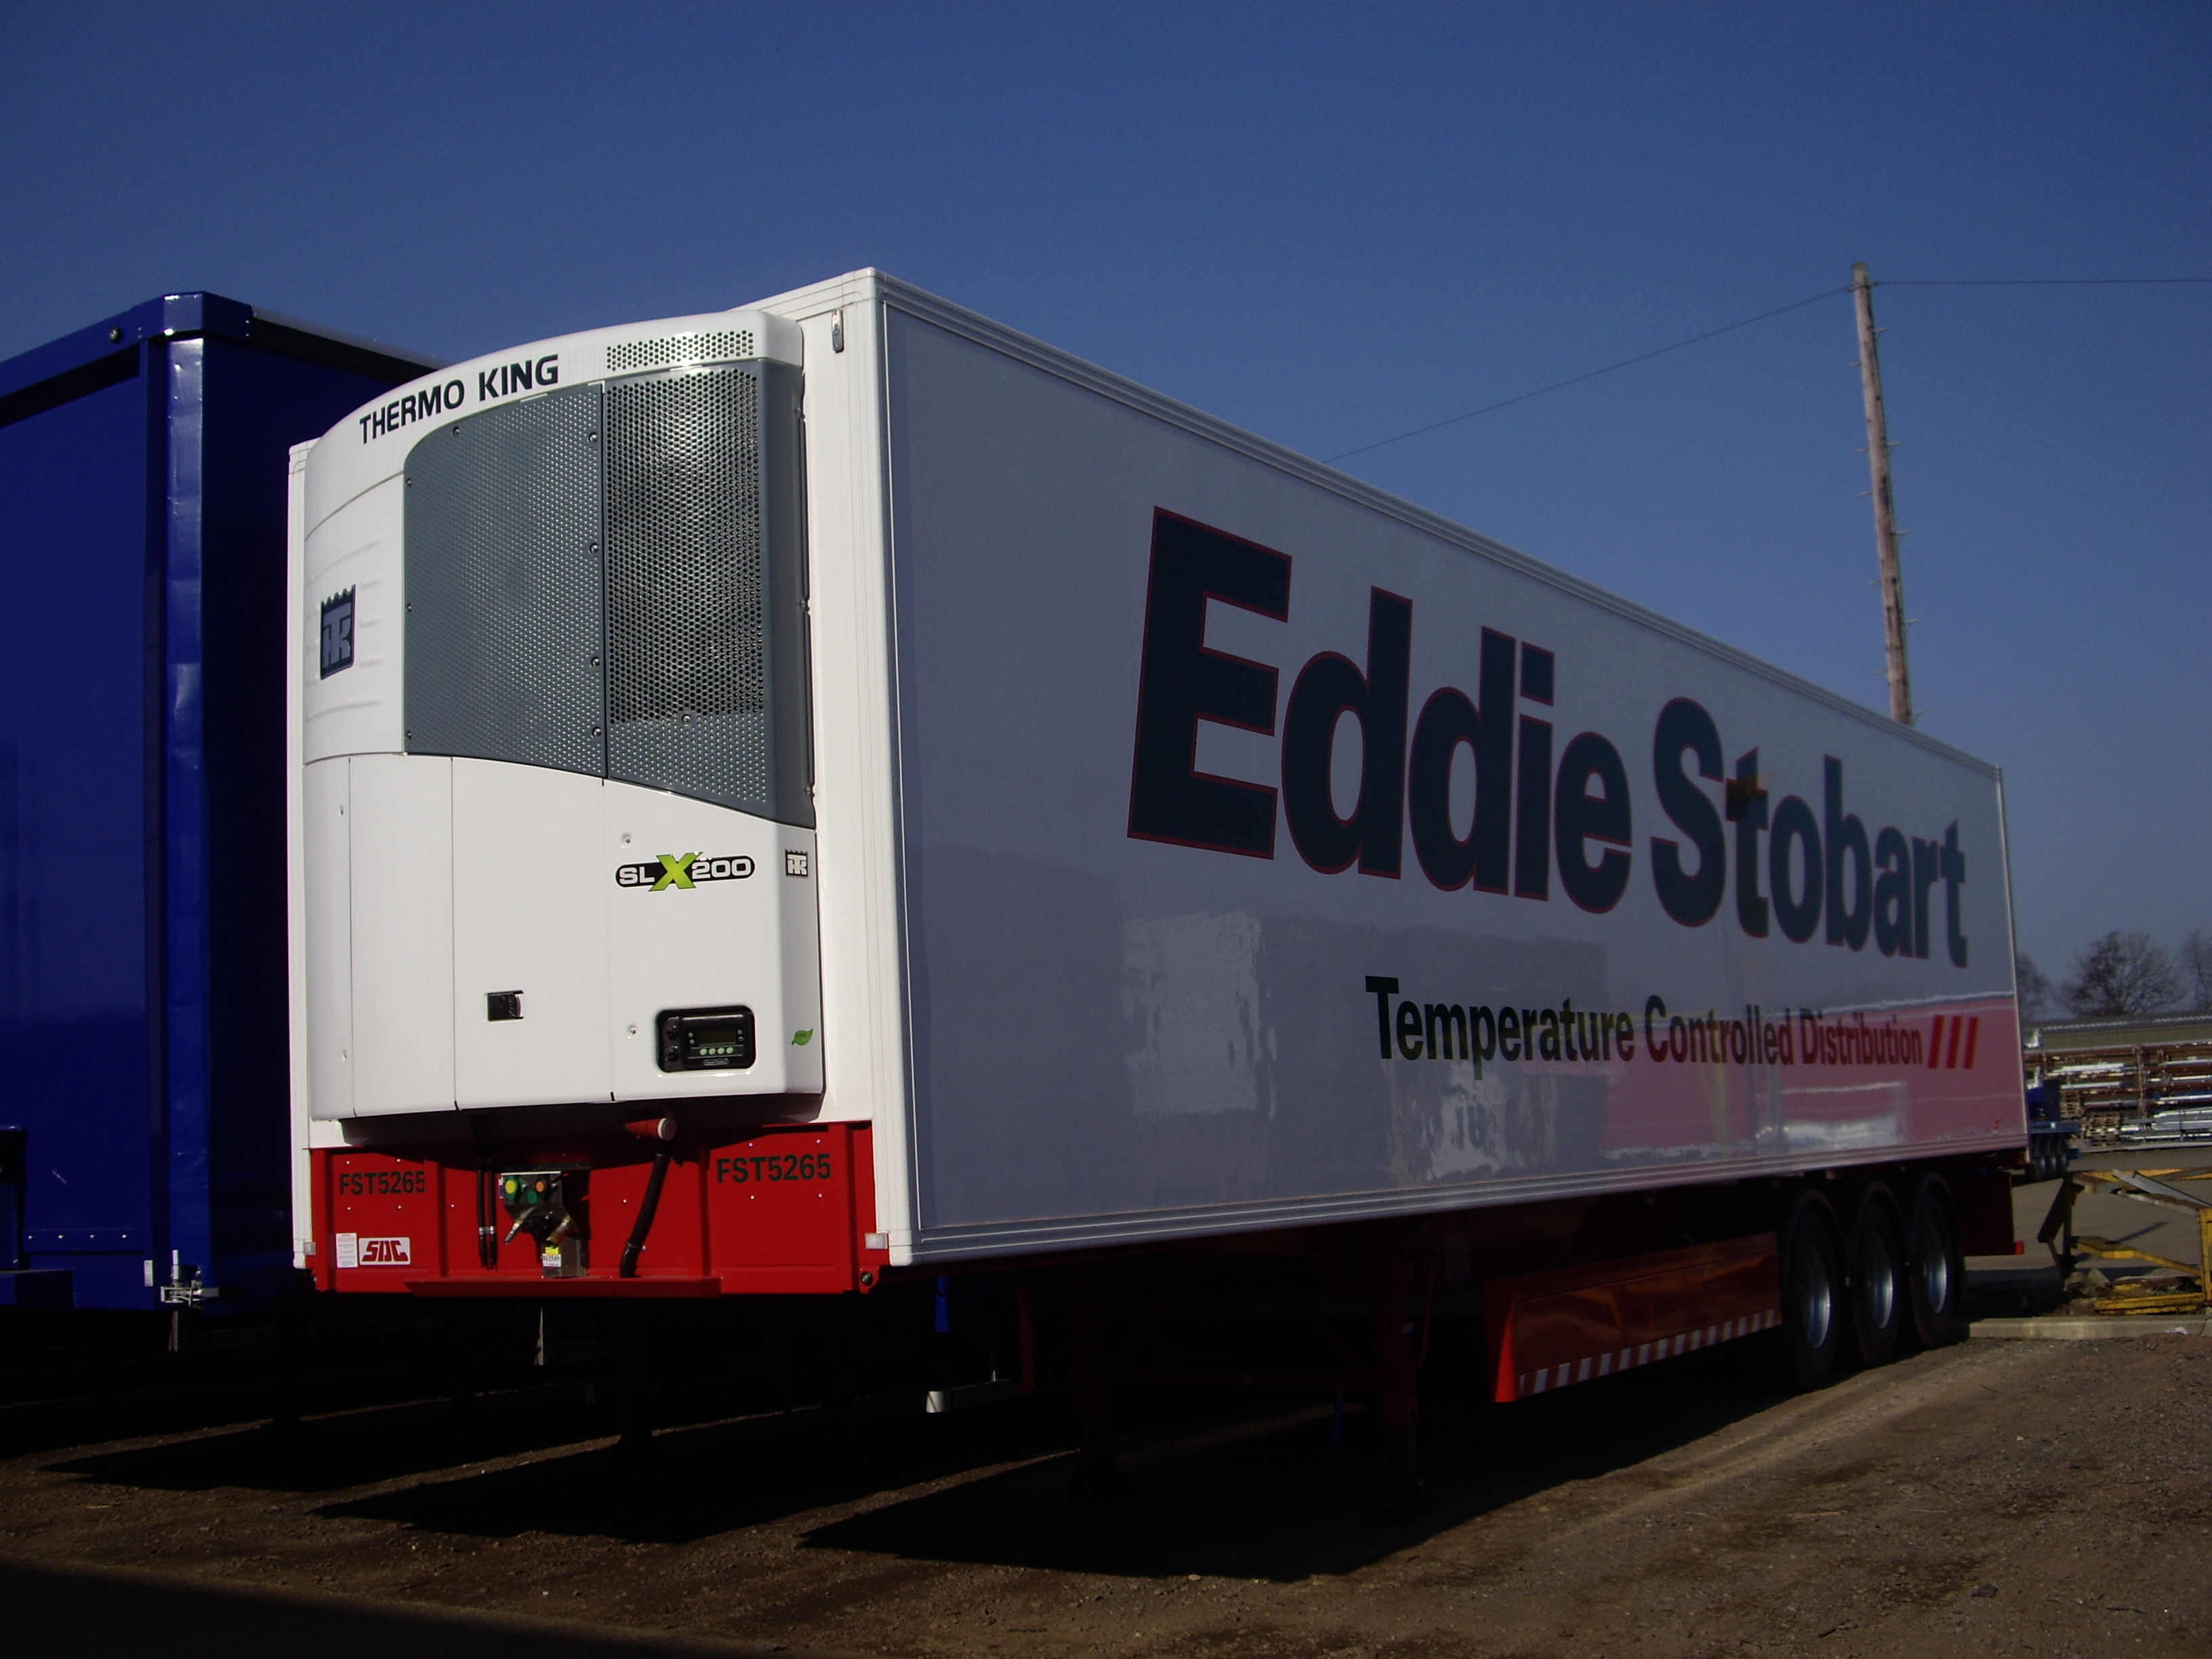 Marontech Communications MFS Supplies Eddie Stobart with Thermo King